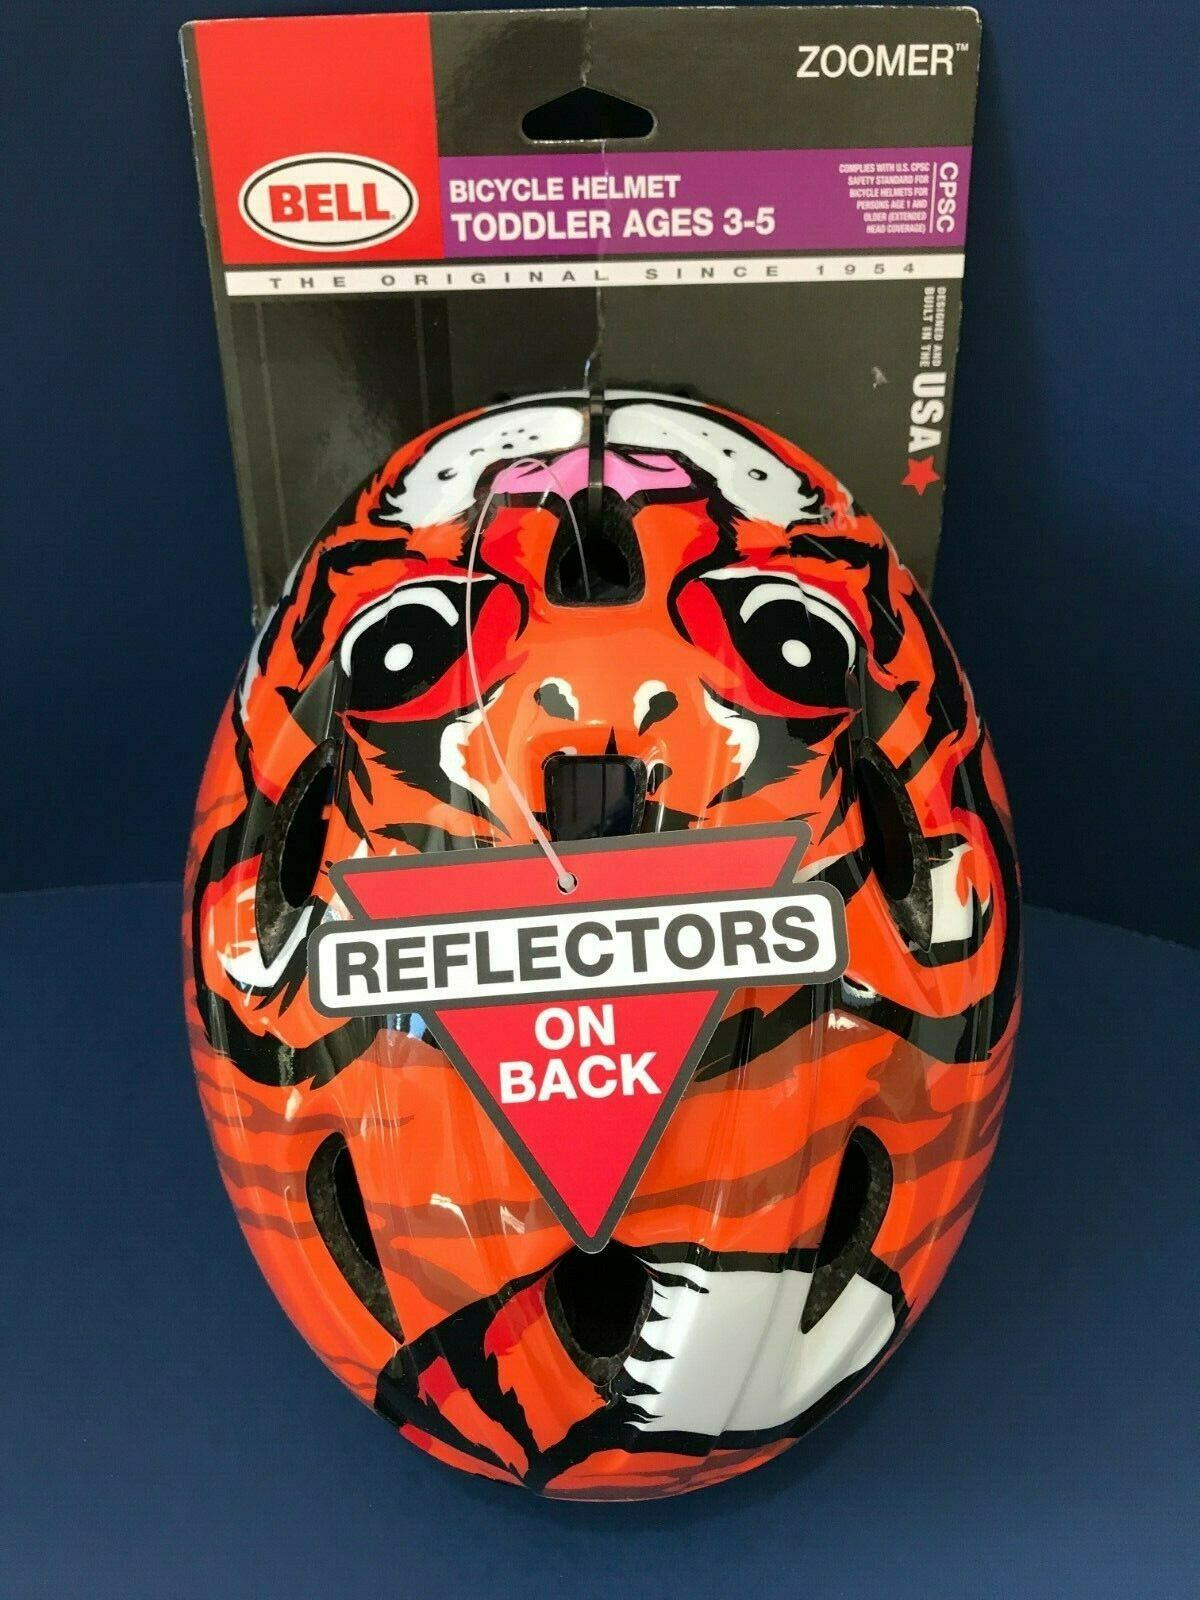 BELL ZOOMER Tiger Bicycle Helmet , Age 3-5, New